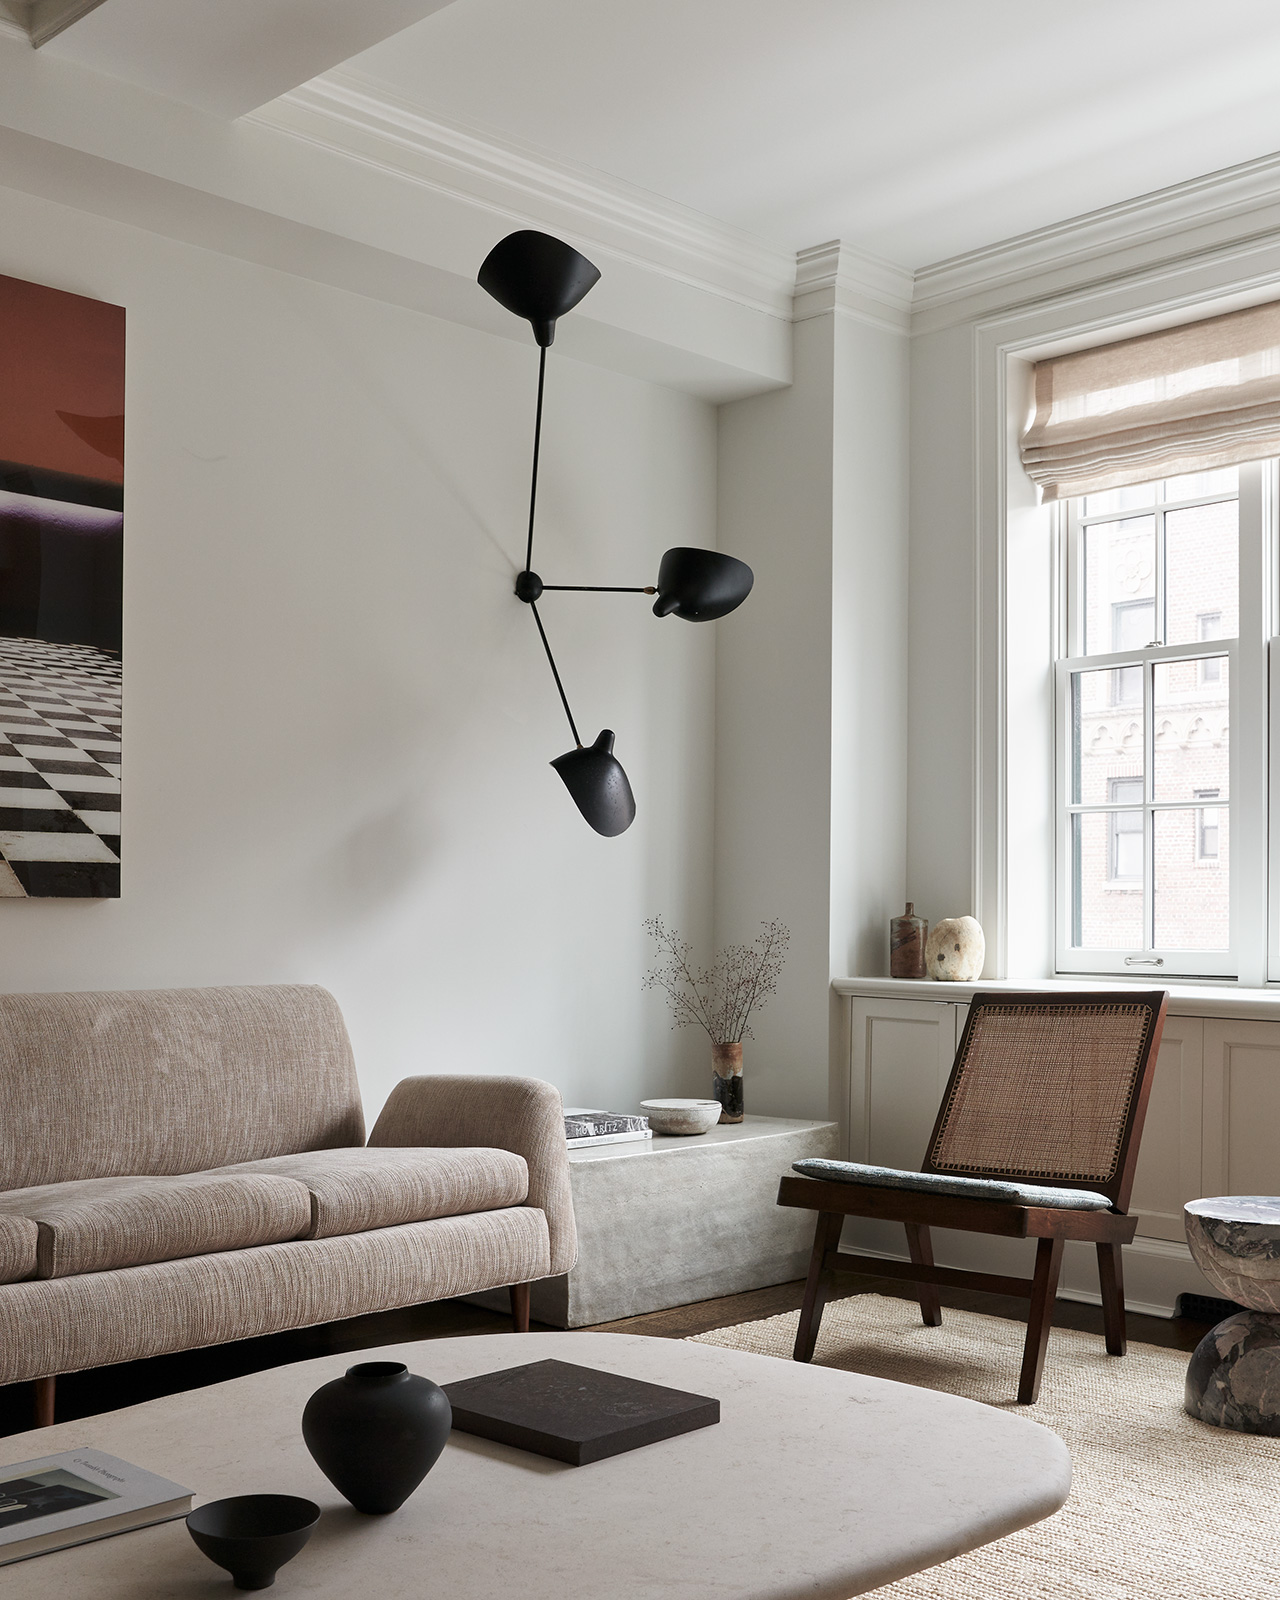 Photography by Adrian Gaut. Styling by Colin King. Featured: Sofa by Martin Eisler & Carlo Hauner for Forma circa 1955 from Bossa Furniture; Coffee table by Axel Vervoordt; Pair of chairs by Pierre Jeanneret circa 1958 from Dobrinka Salzman; Wall sconce by Serge Mouille circa 1955 from MDFG; Bespoke side table below sconceby Sandra Weingort fabricated by William Coggin from Studio Tashtego.